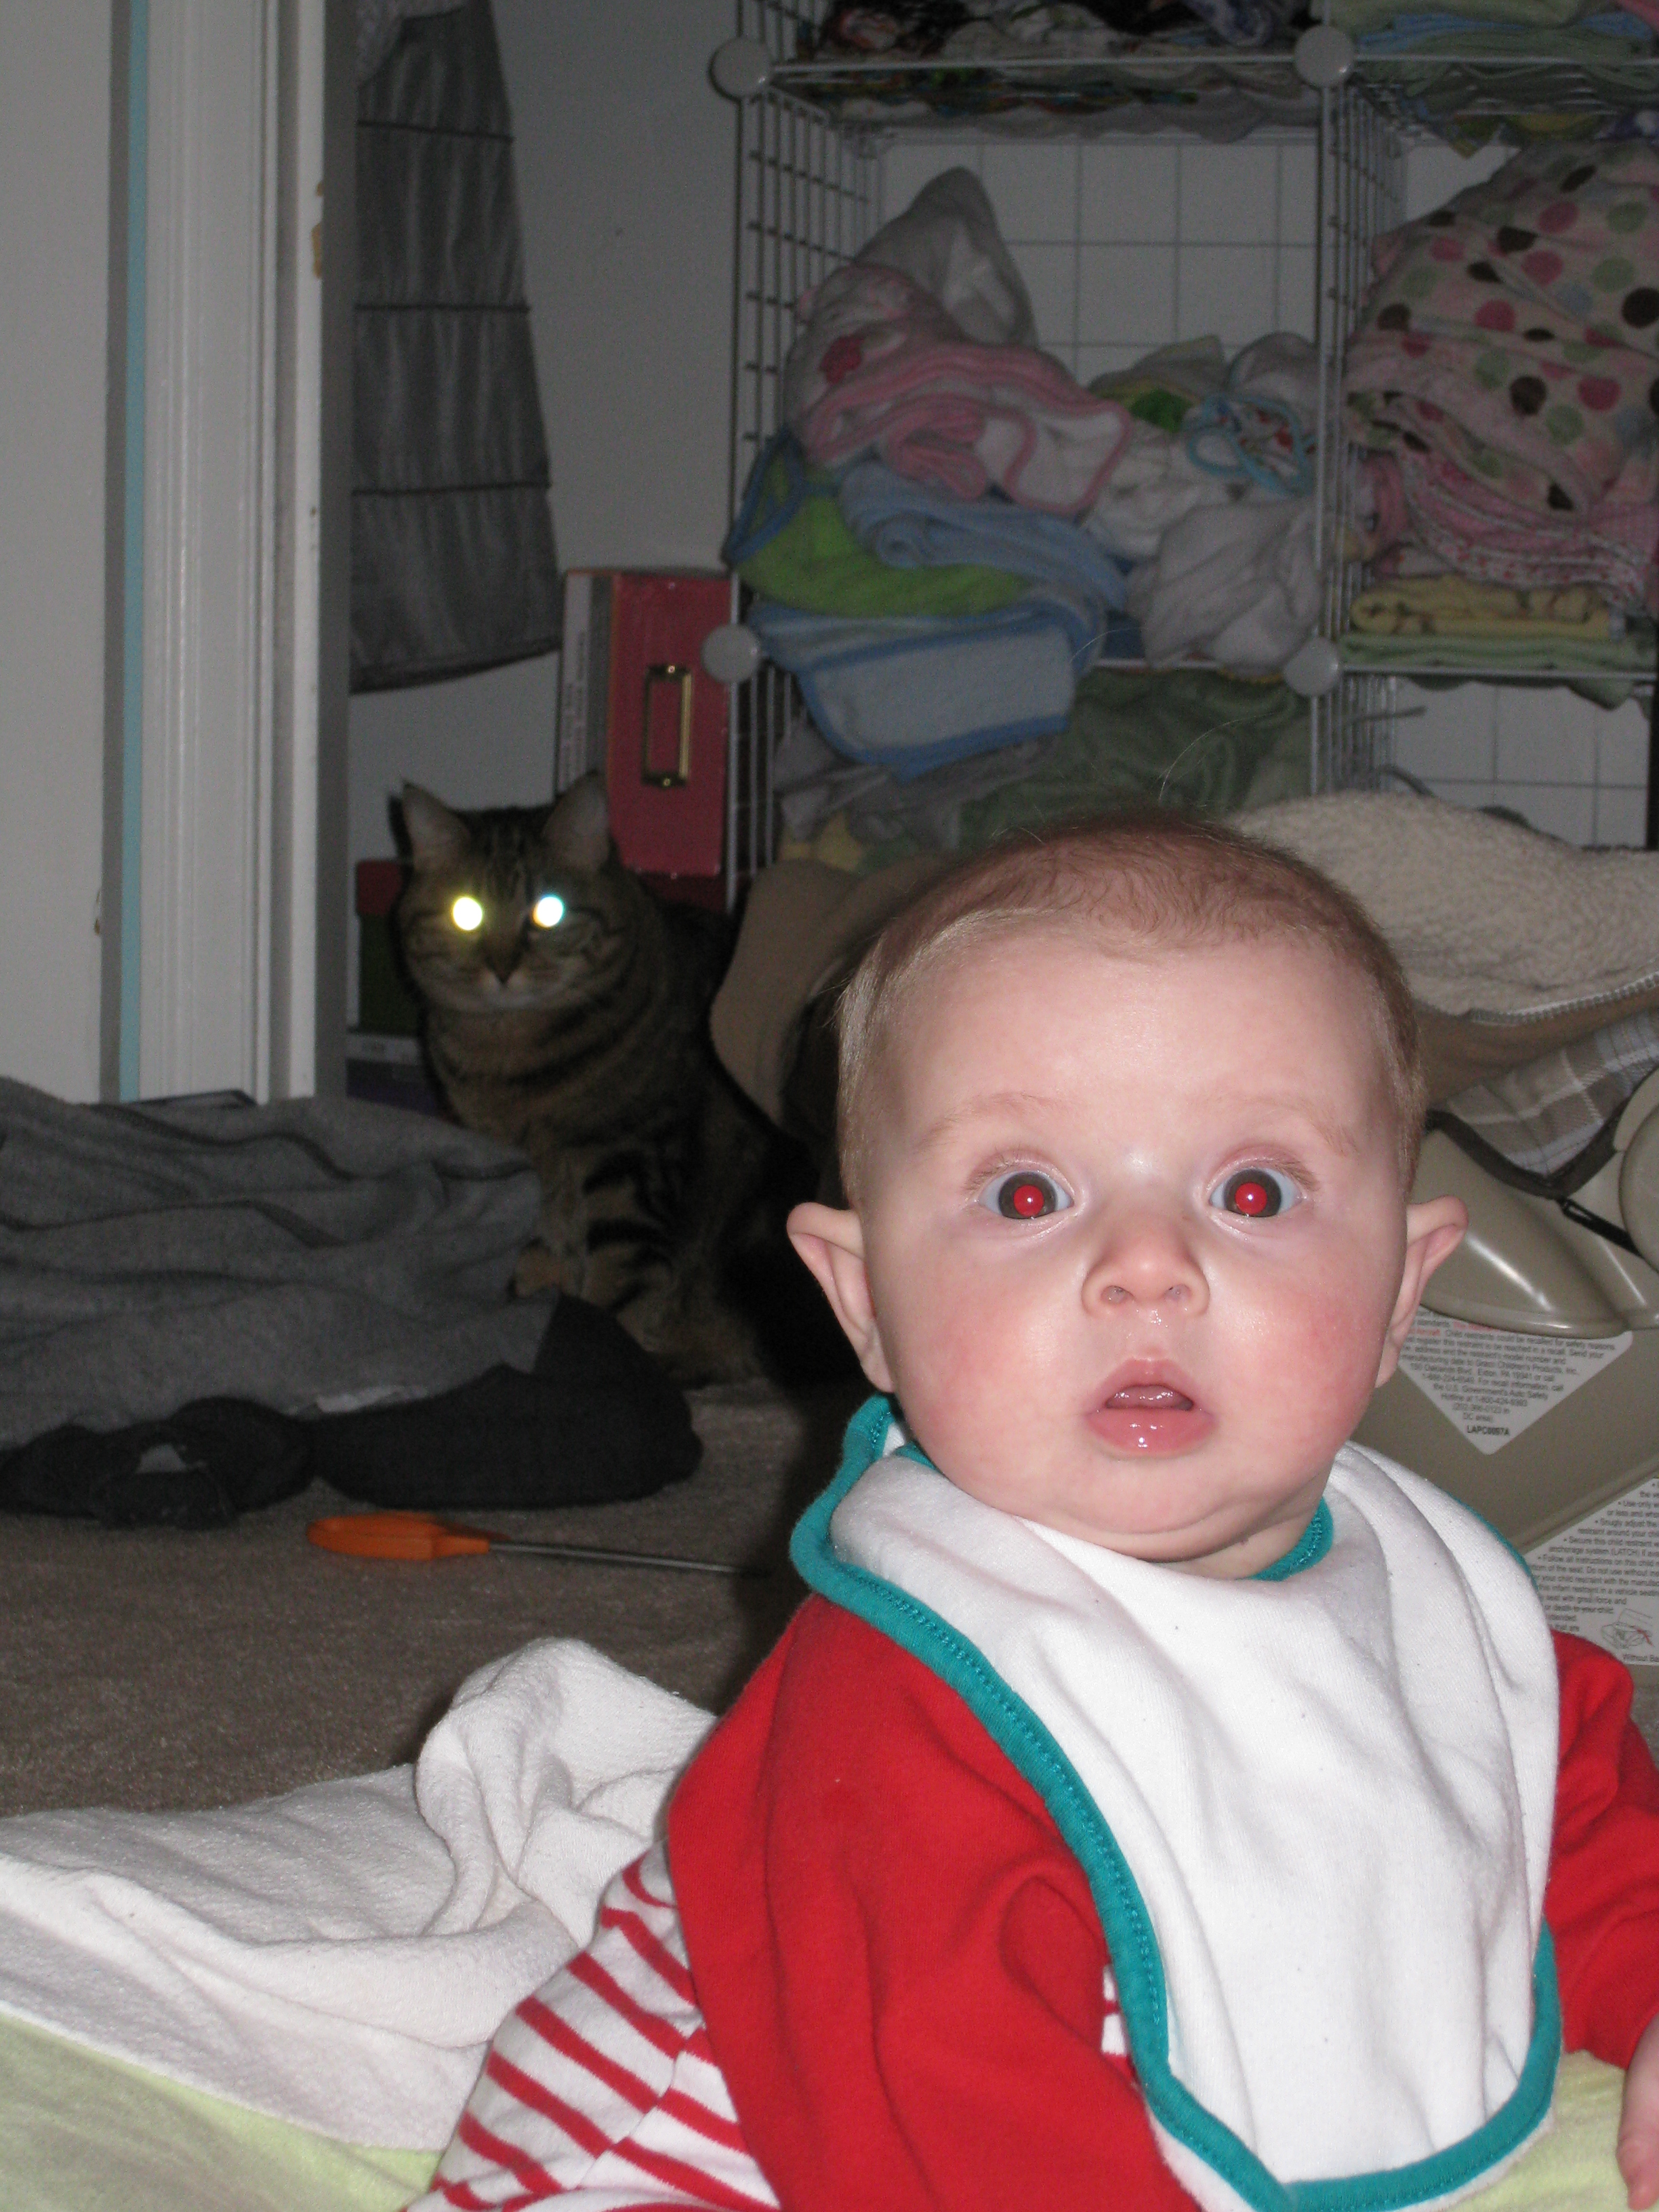 creepy-eyes-photo